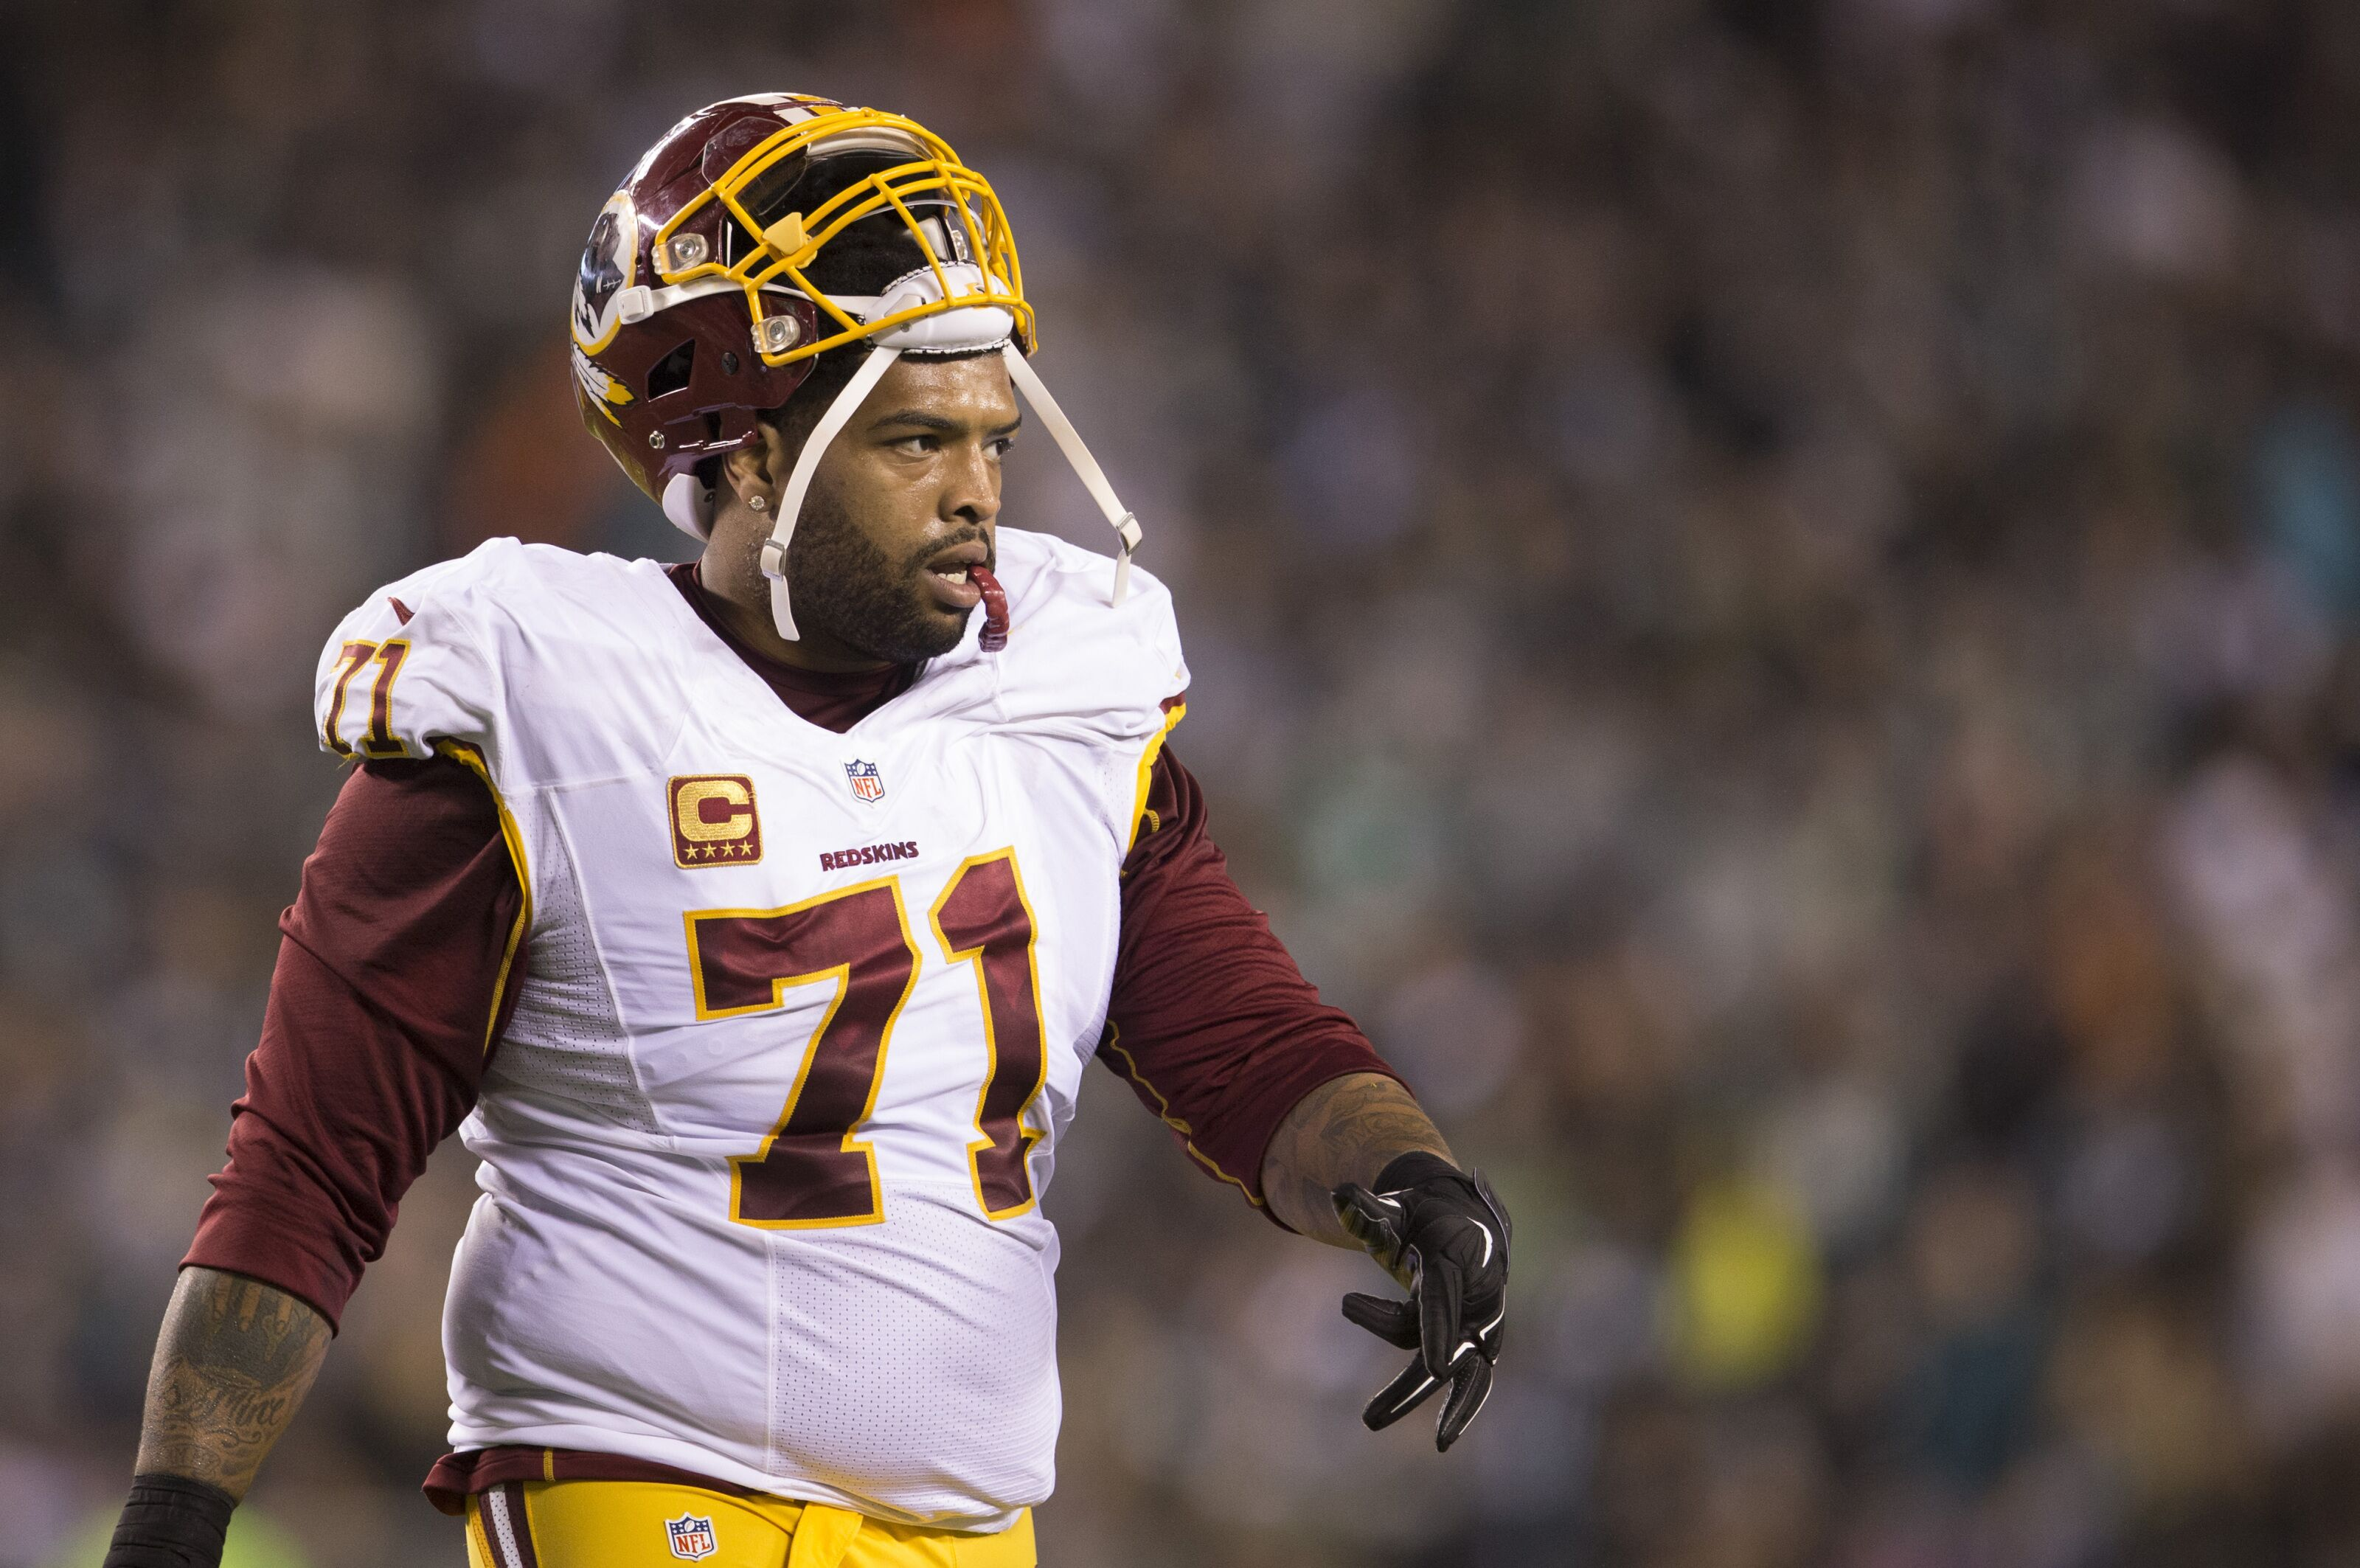 Denver Broncos: Trading for Trent Williams has to be an option